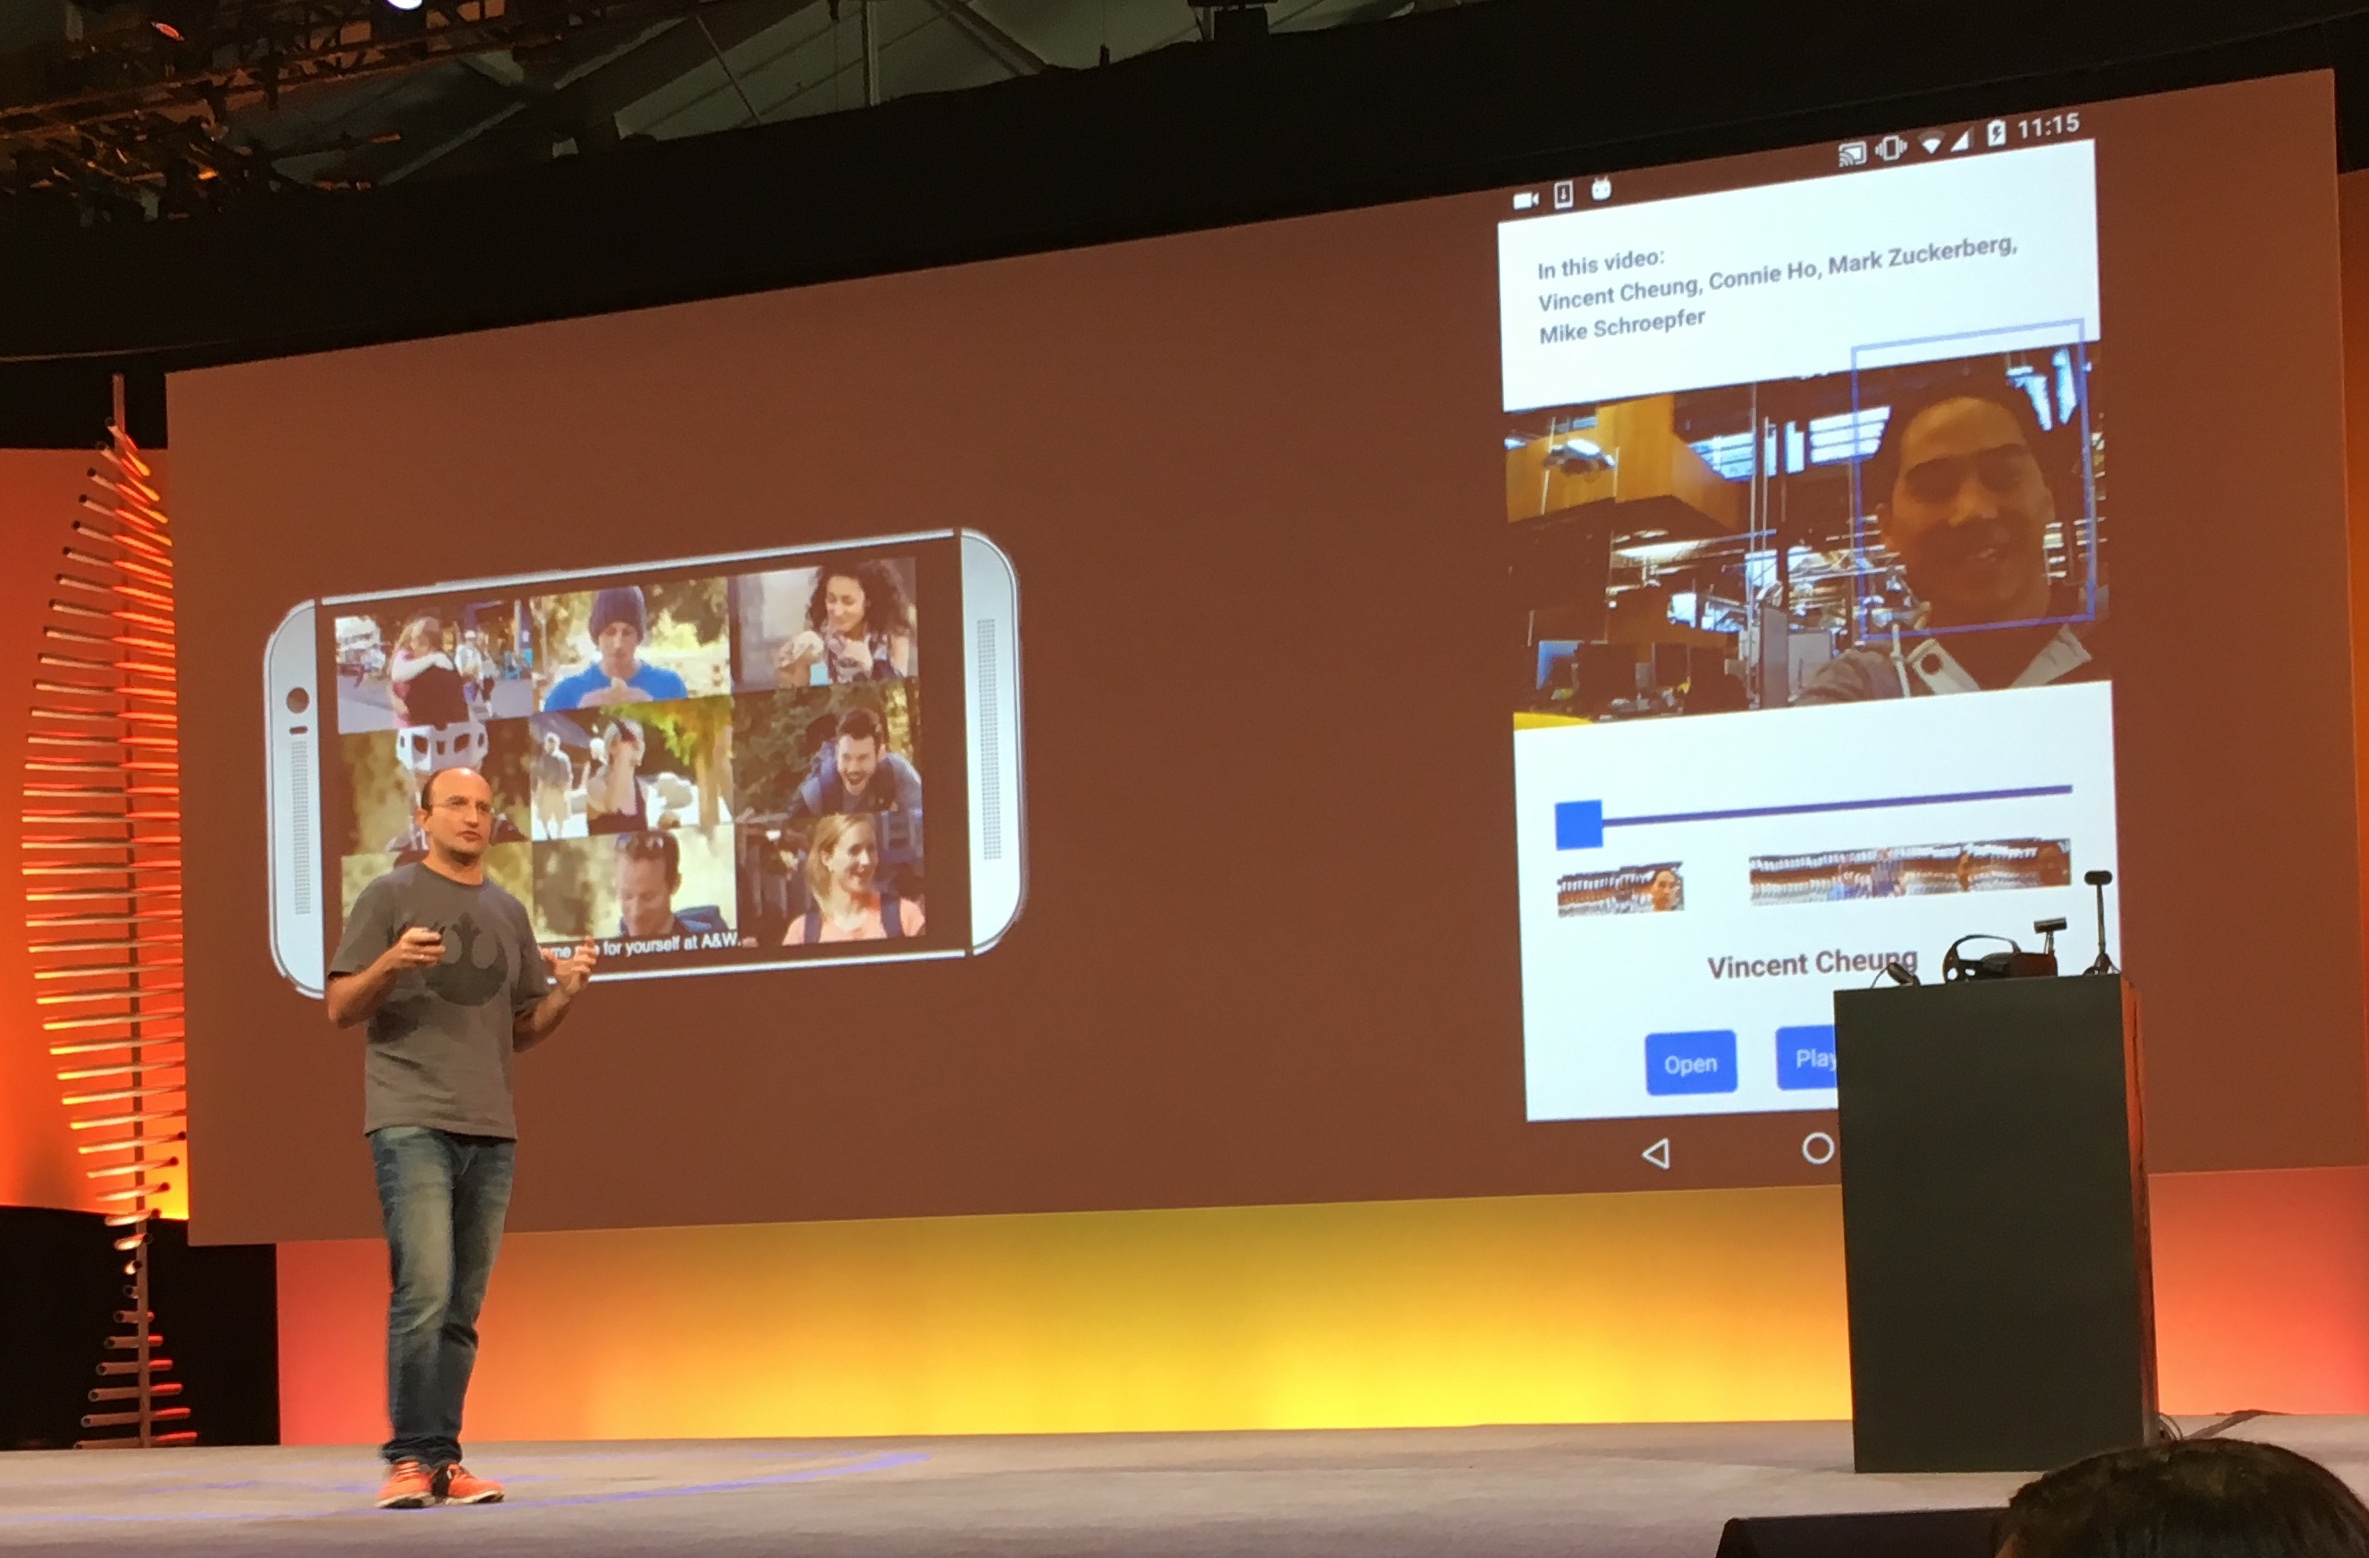 Joaquin Quiñonera Candela, Facebook's director of applied machine learning, talks about Facebook's latest AI research efforts around video at the company's F8 developer conference in San Francisco on April 13, 2016.